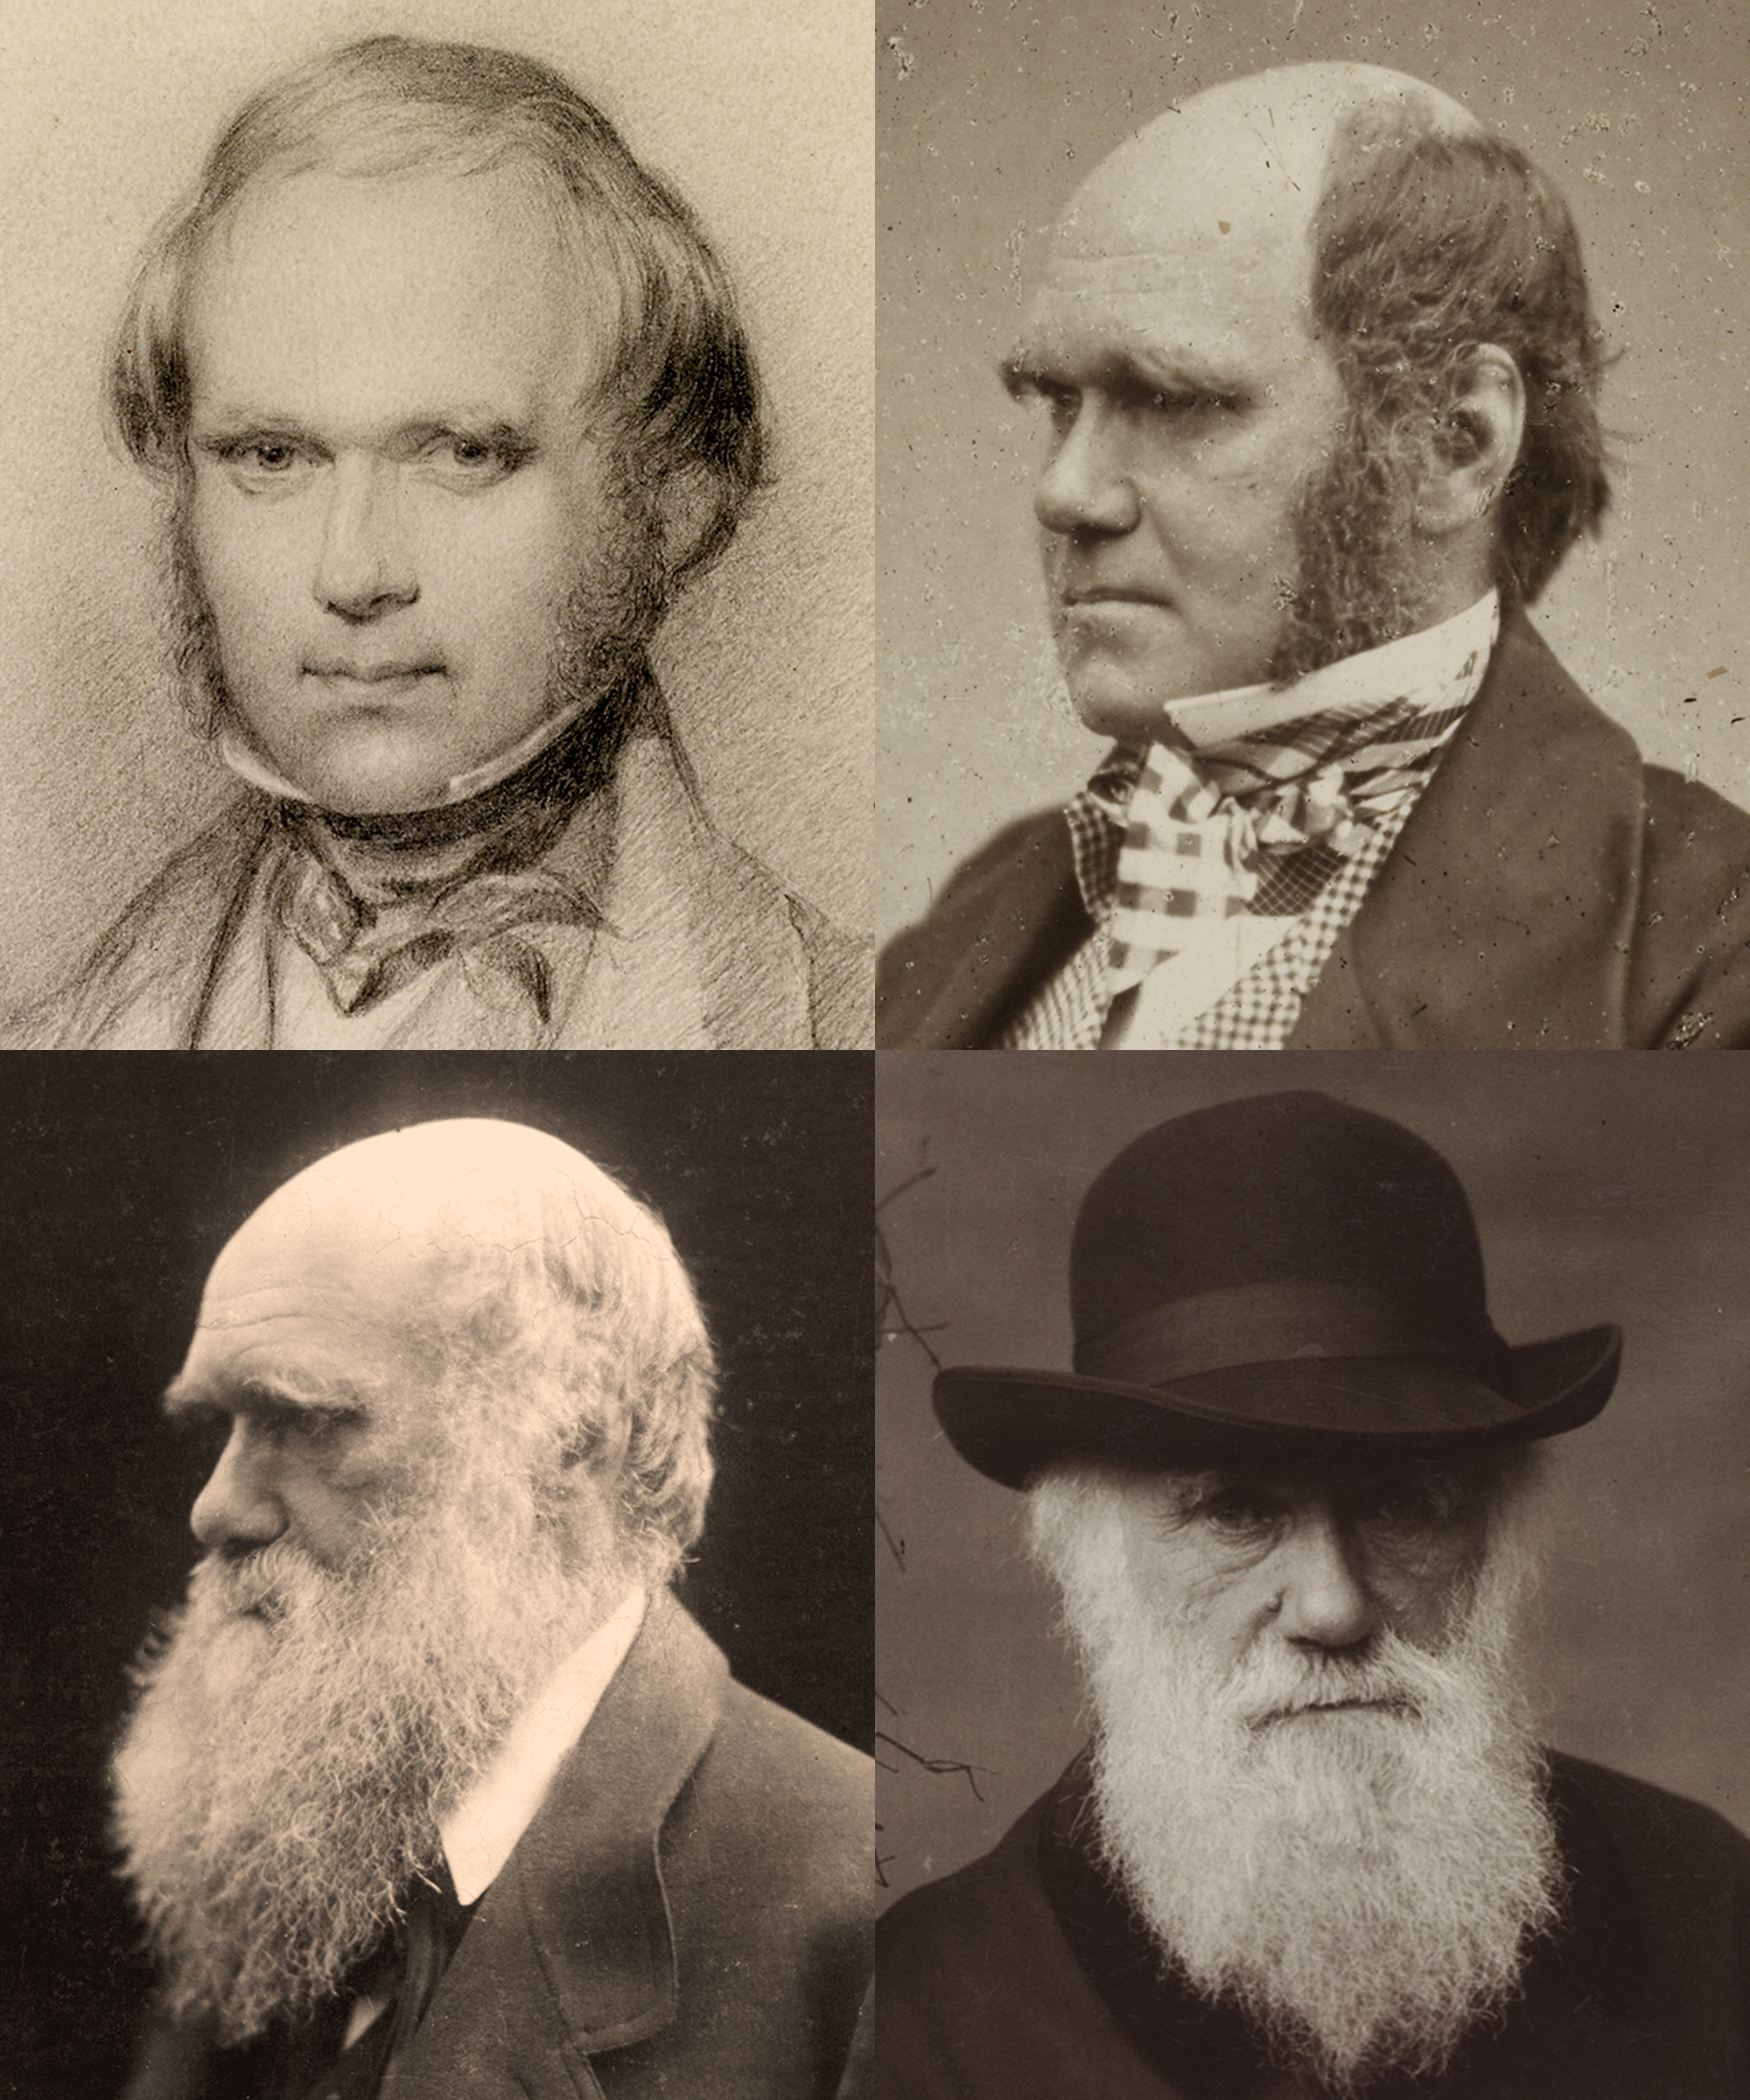 darwin in letters 1844 1846 building a scientific network darwin in letters 1844 1846 building a scientific network darwin correspondence project